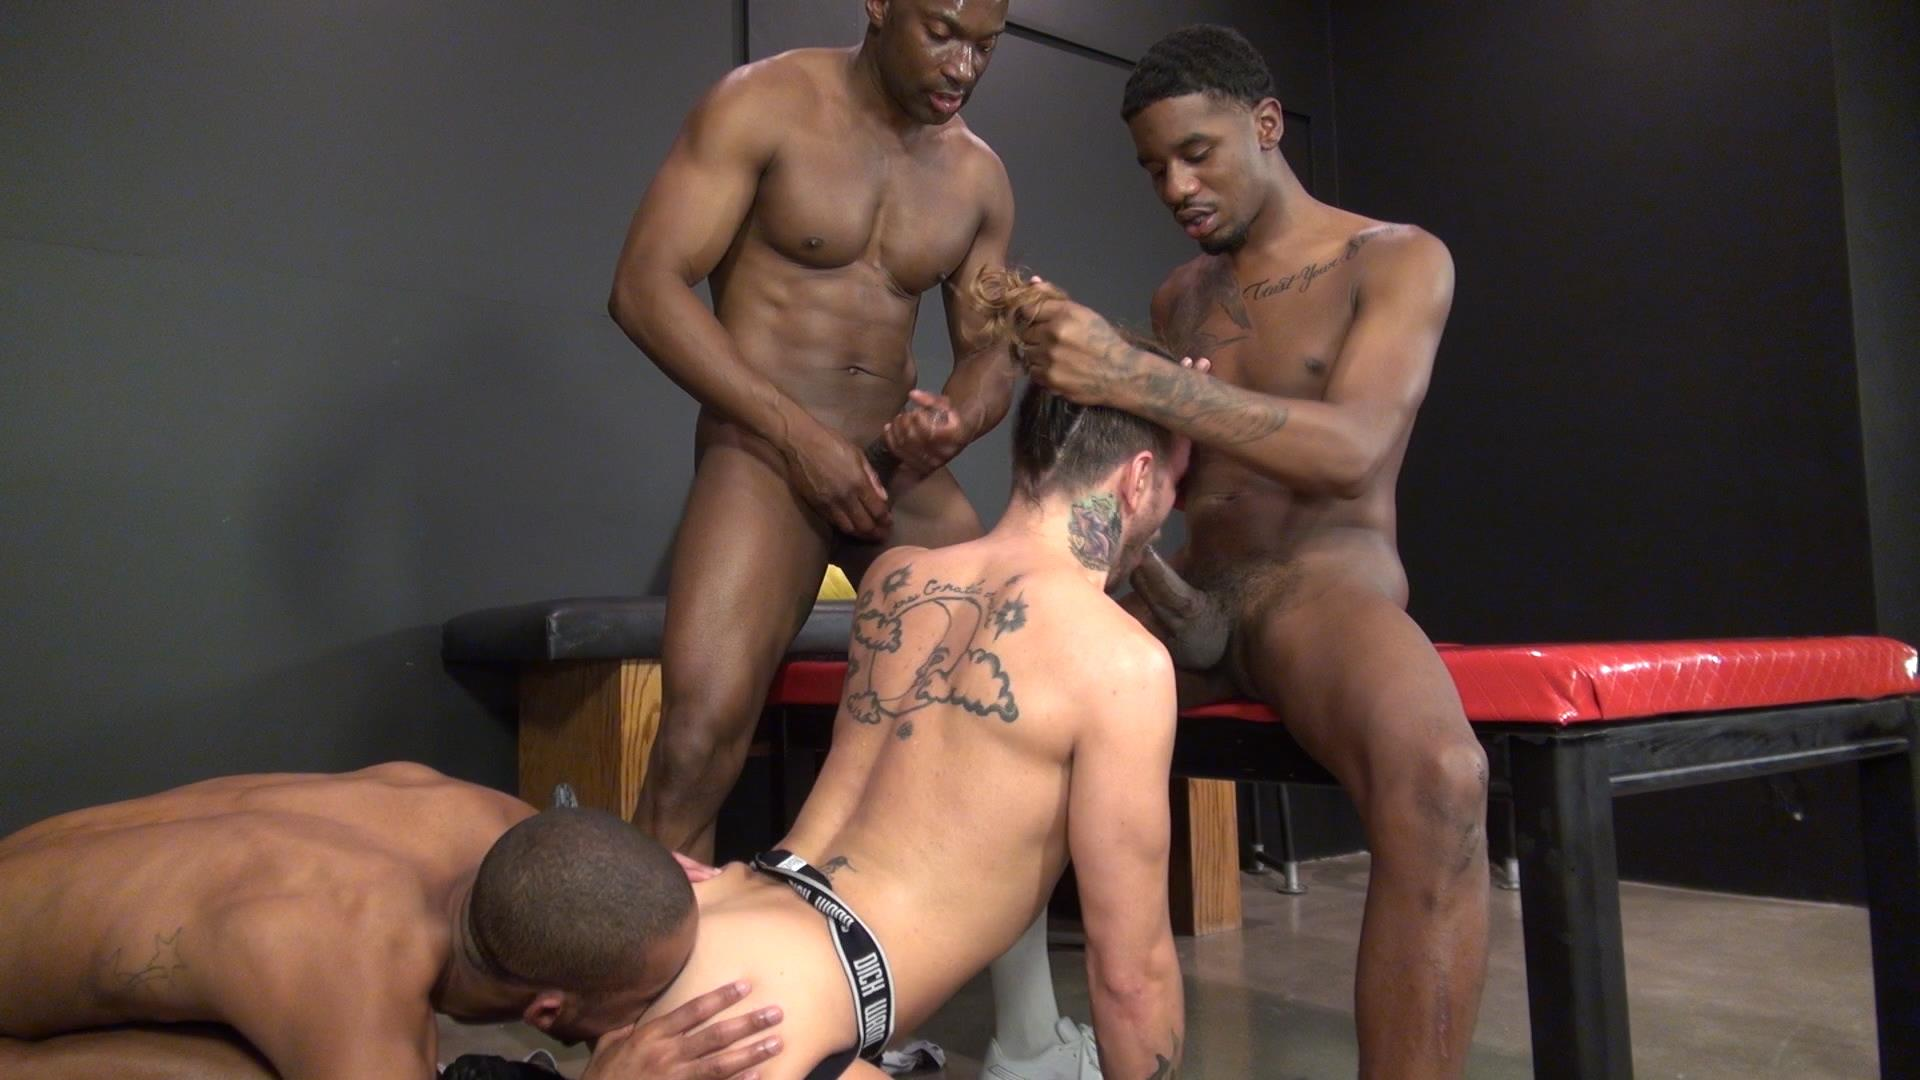 raw and rough – black men cock